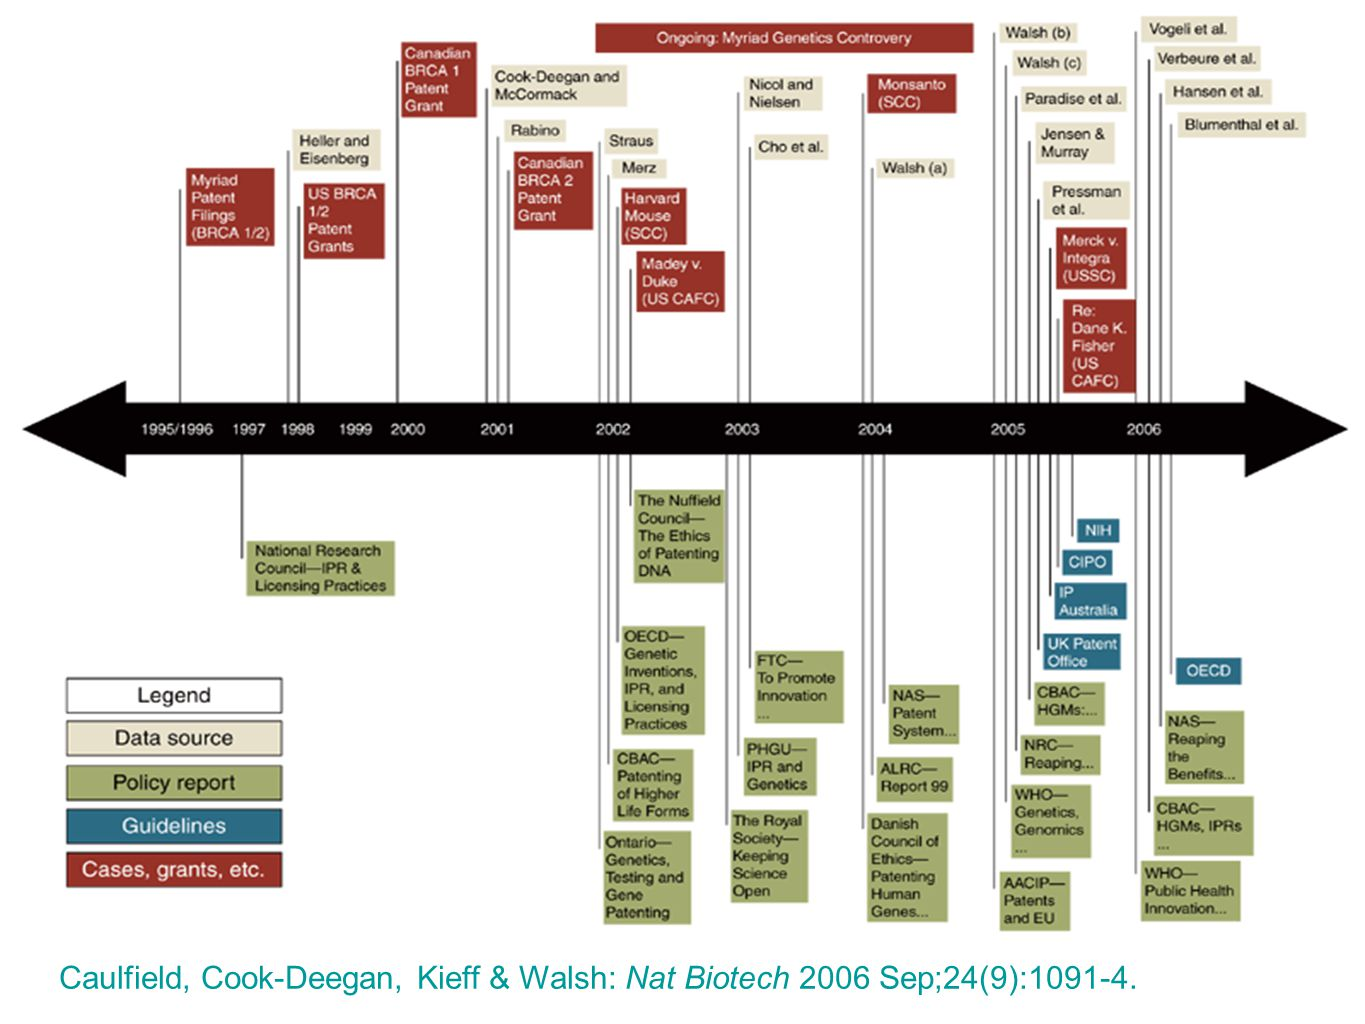 Timeline Caulfield, Cook-Deegan, Kieff & Walsh: Nat Biotech 2006 Sep;24(9):1091-4.